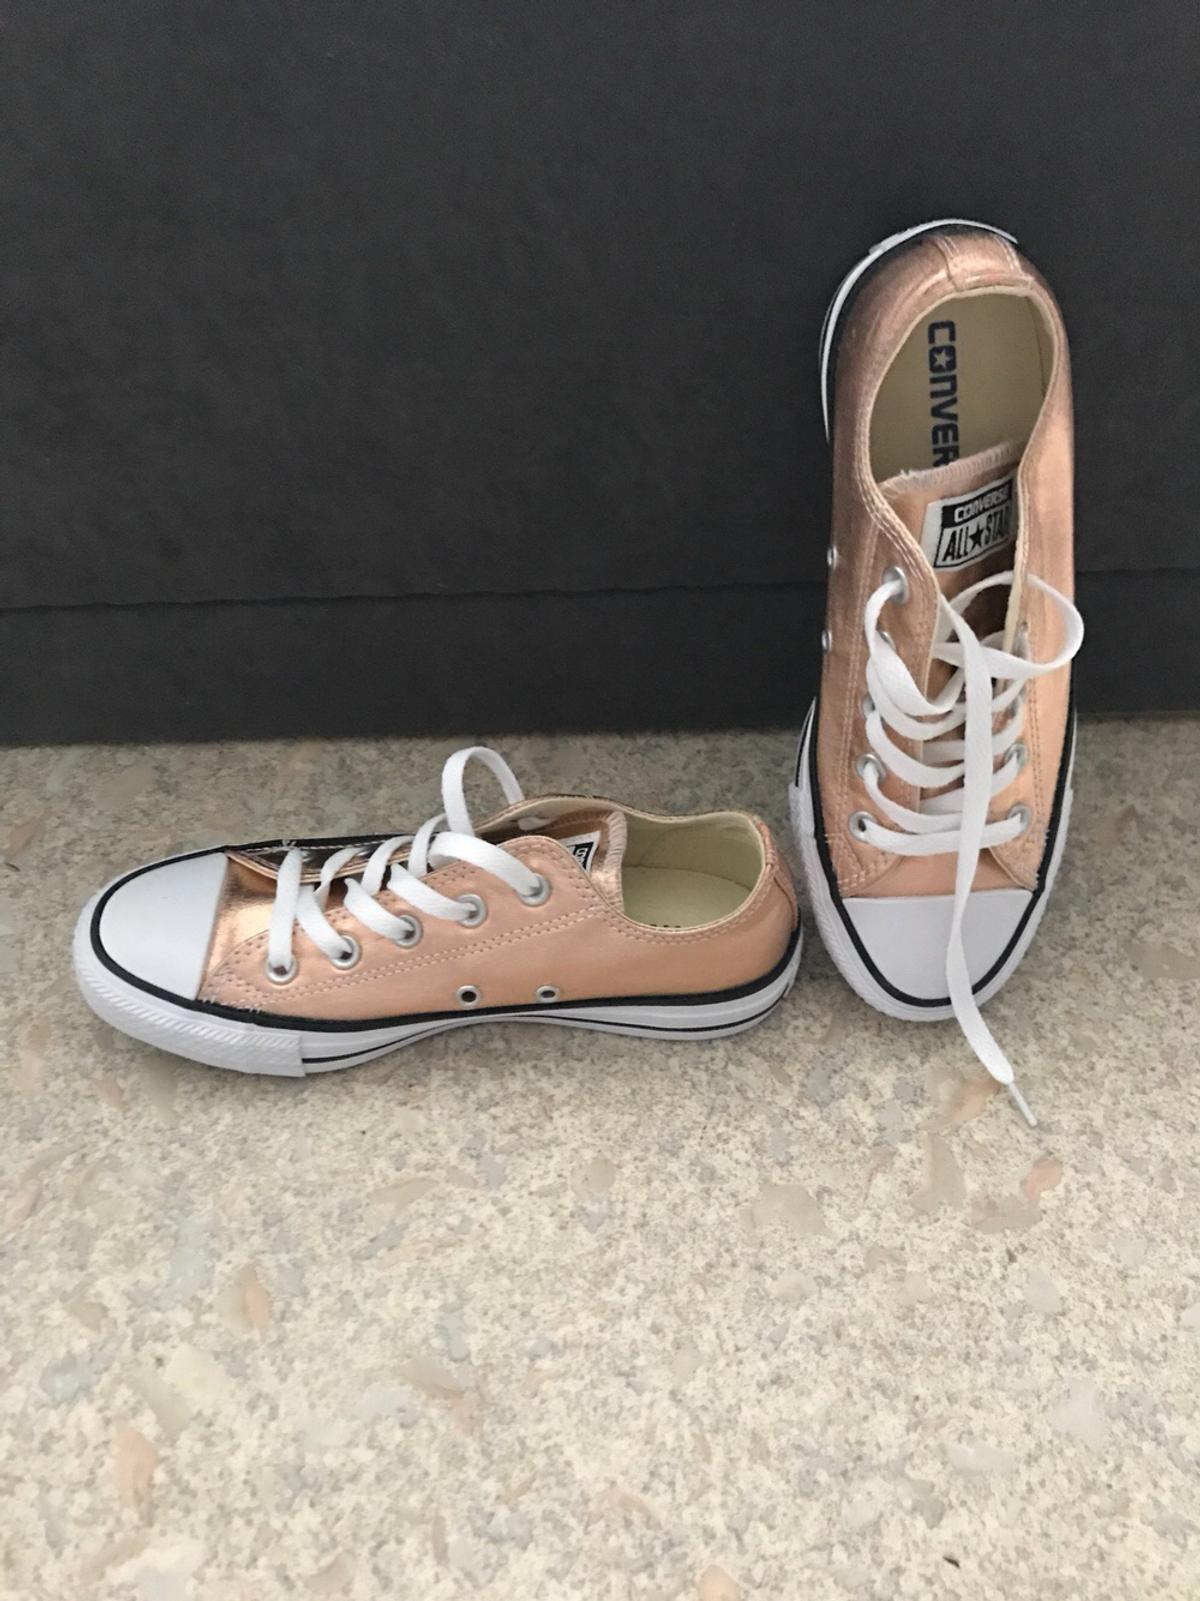 Converse all Star chucks Rose Gold